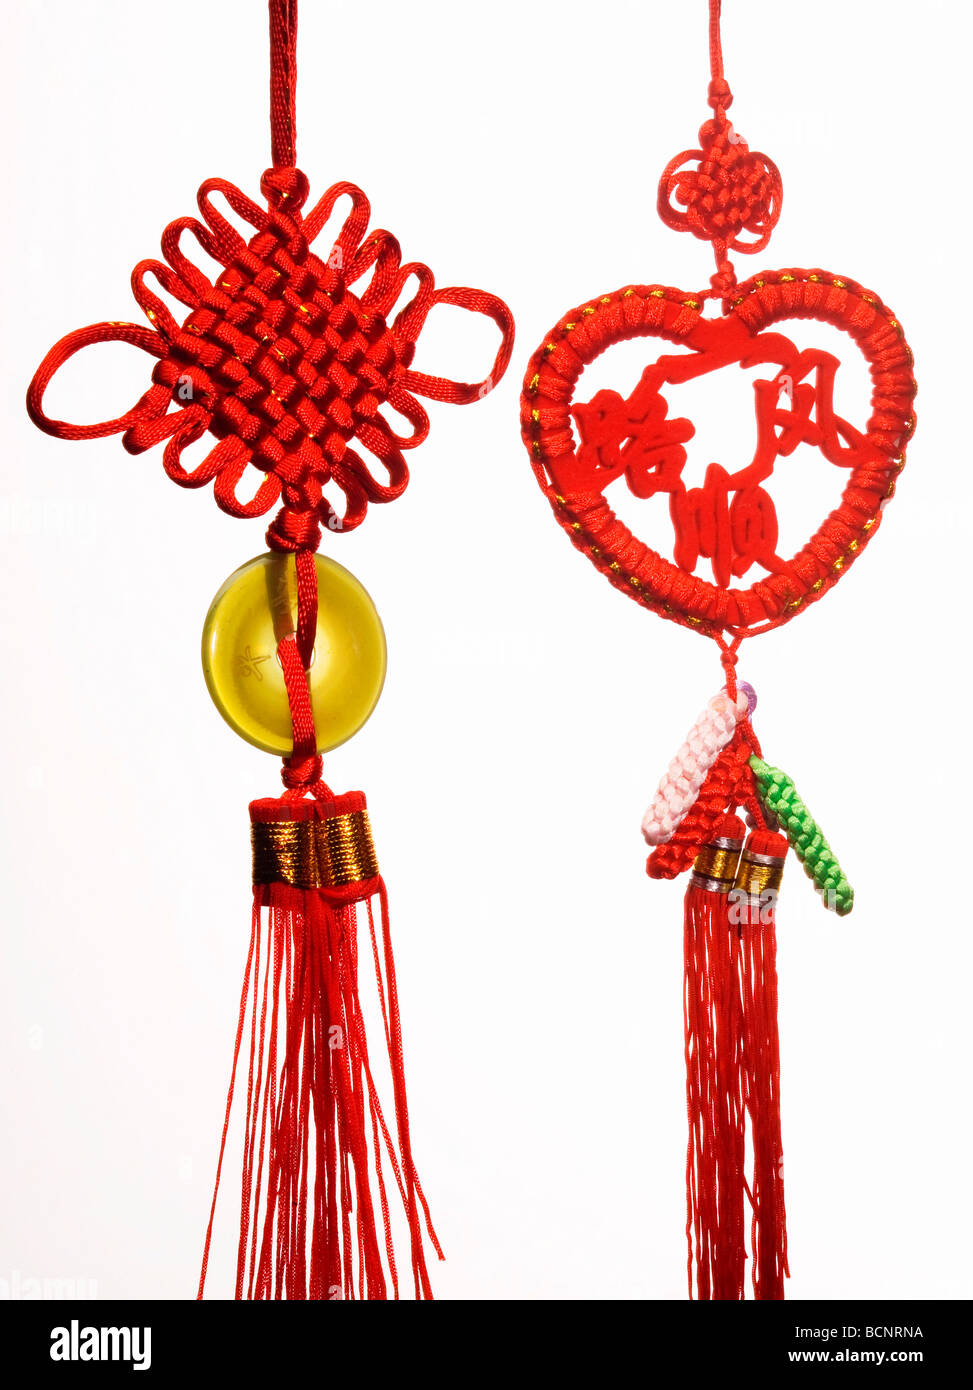 Two Chinese knots - Stock Image